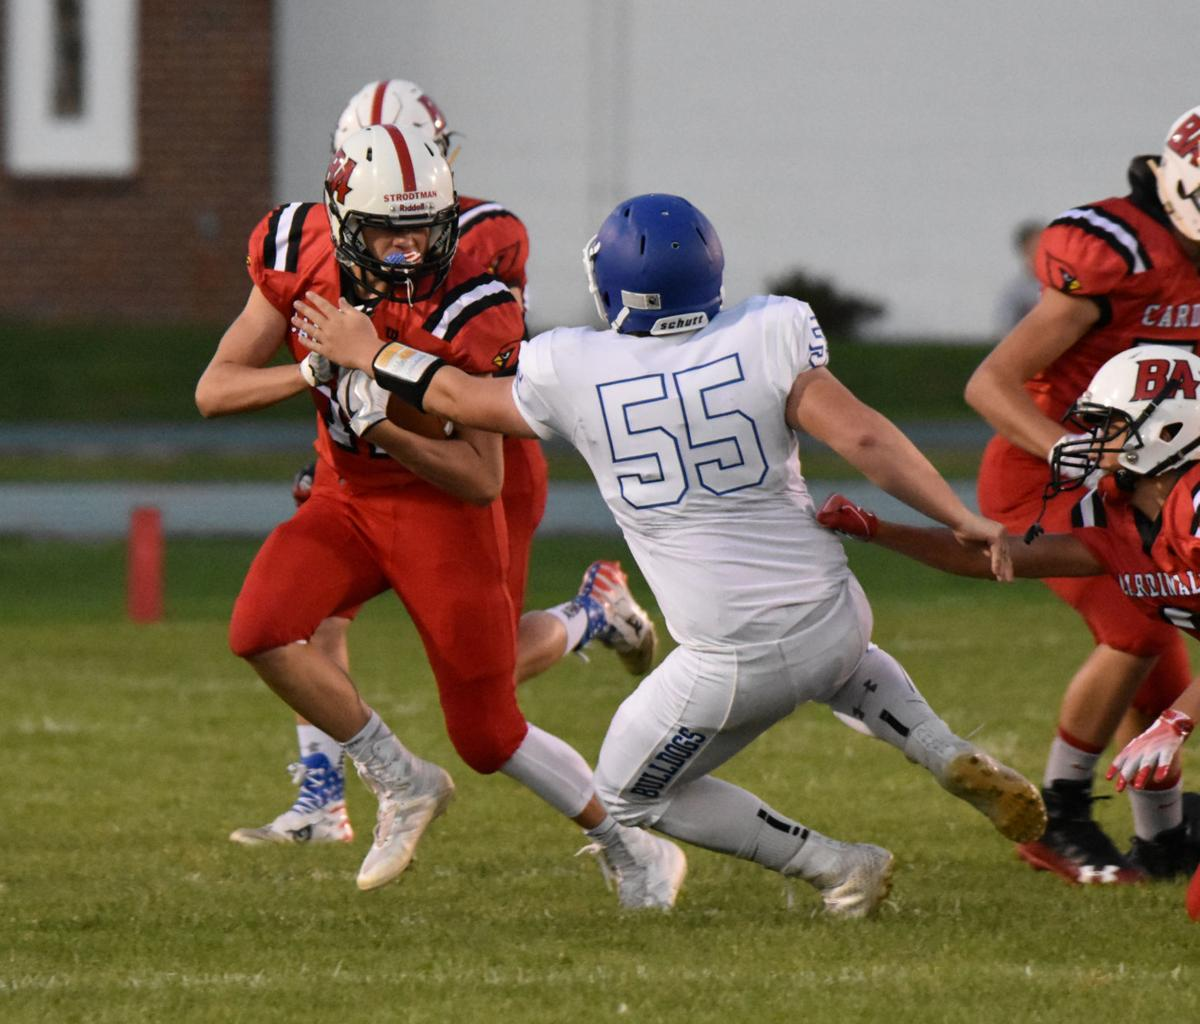 Sam Whitelock Breaks A Tackle: Cardinals Dominate On The Ground In Win Over JWP